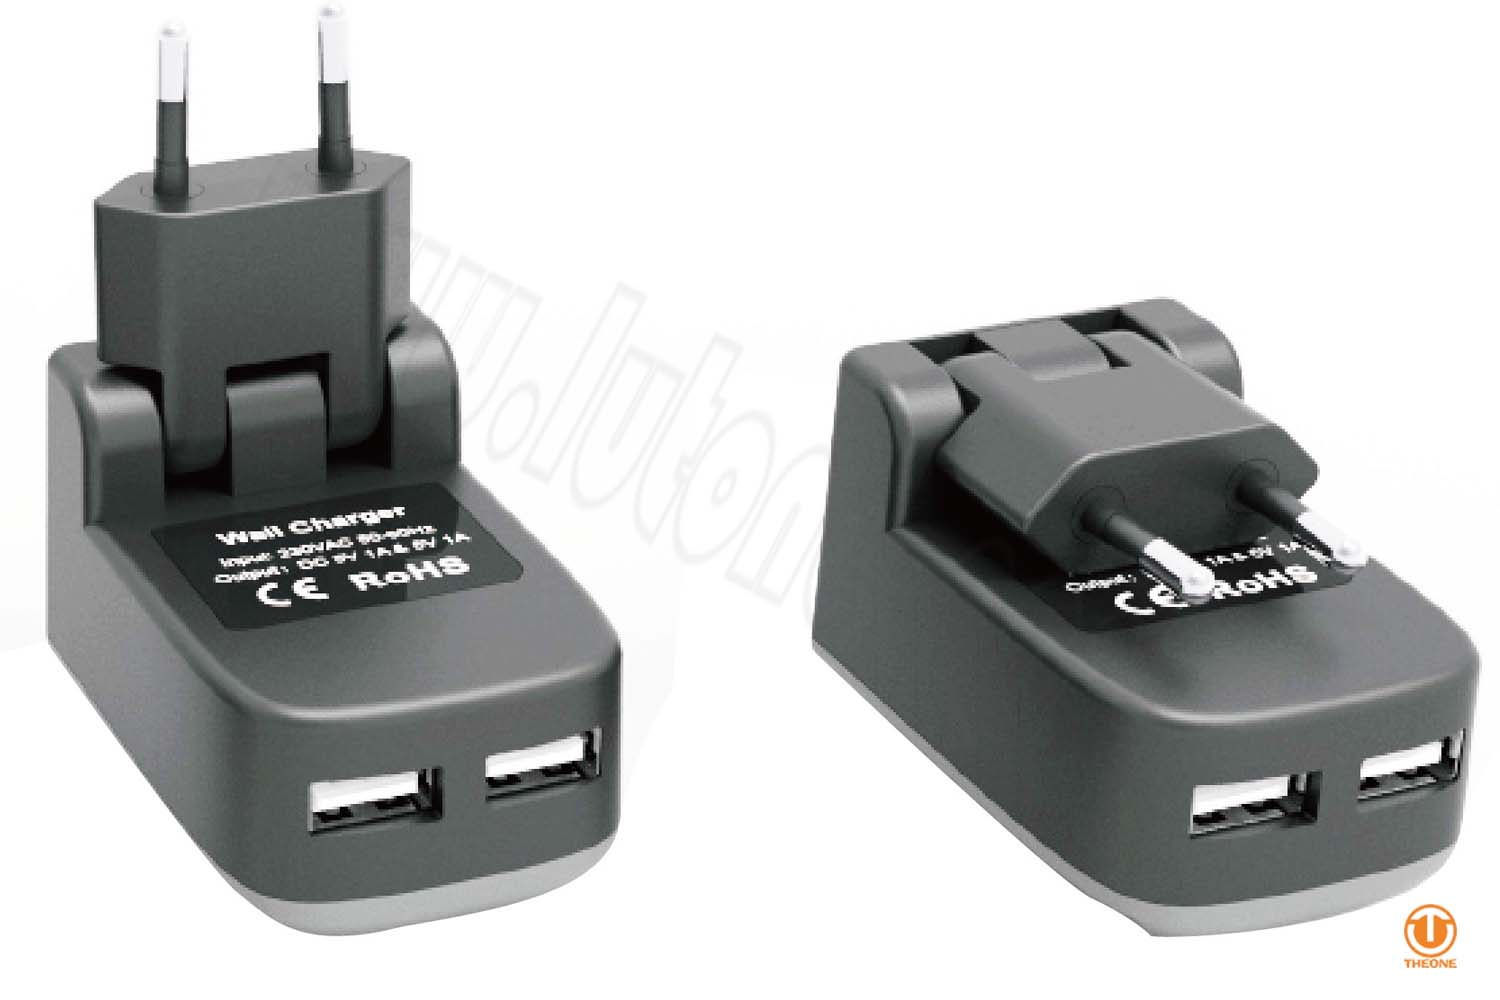 tc02b8-1 dual usb wall charger